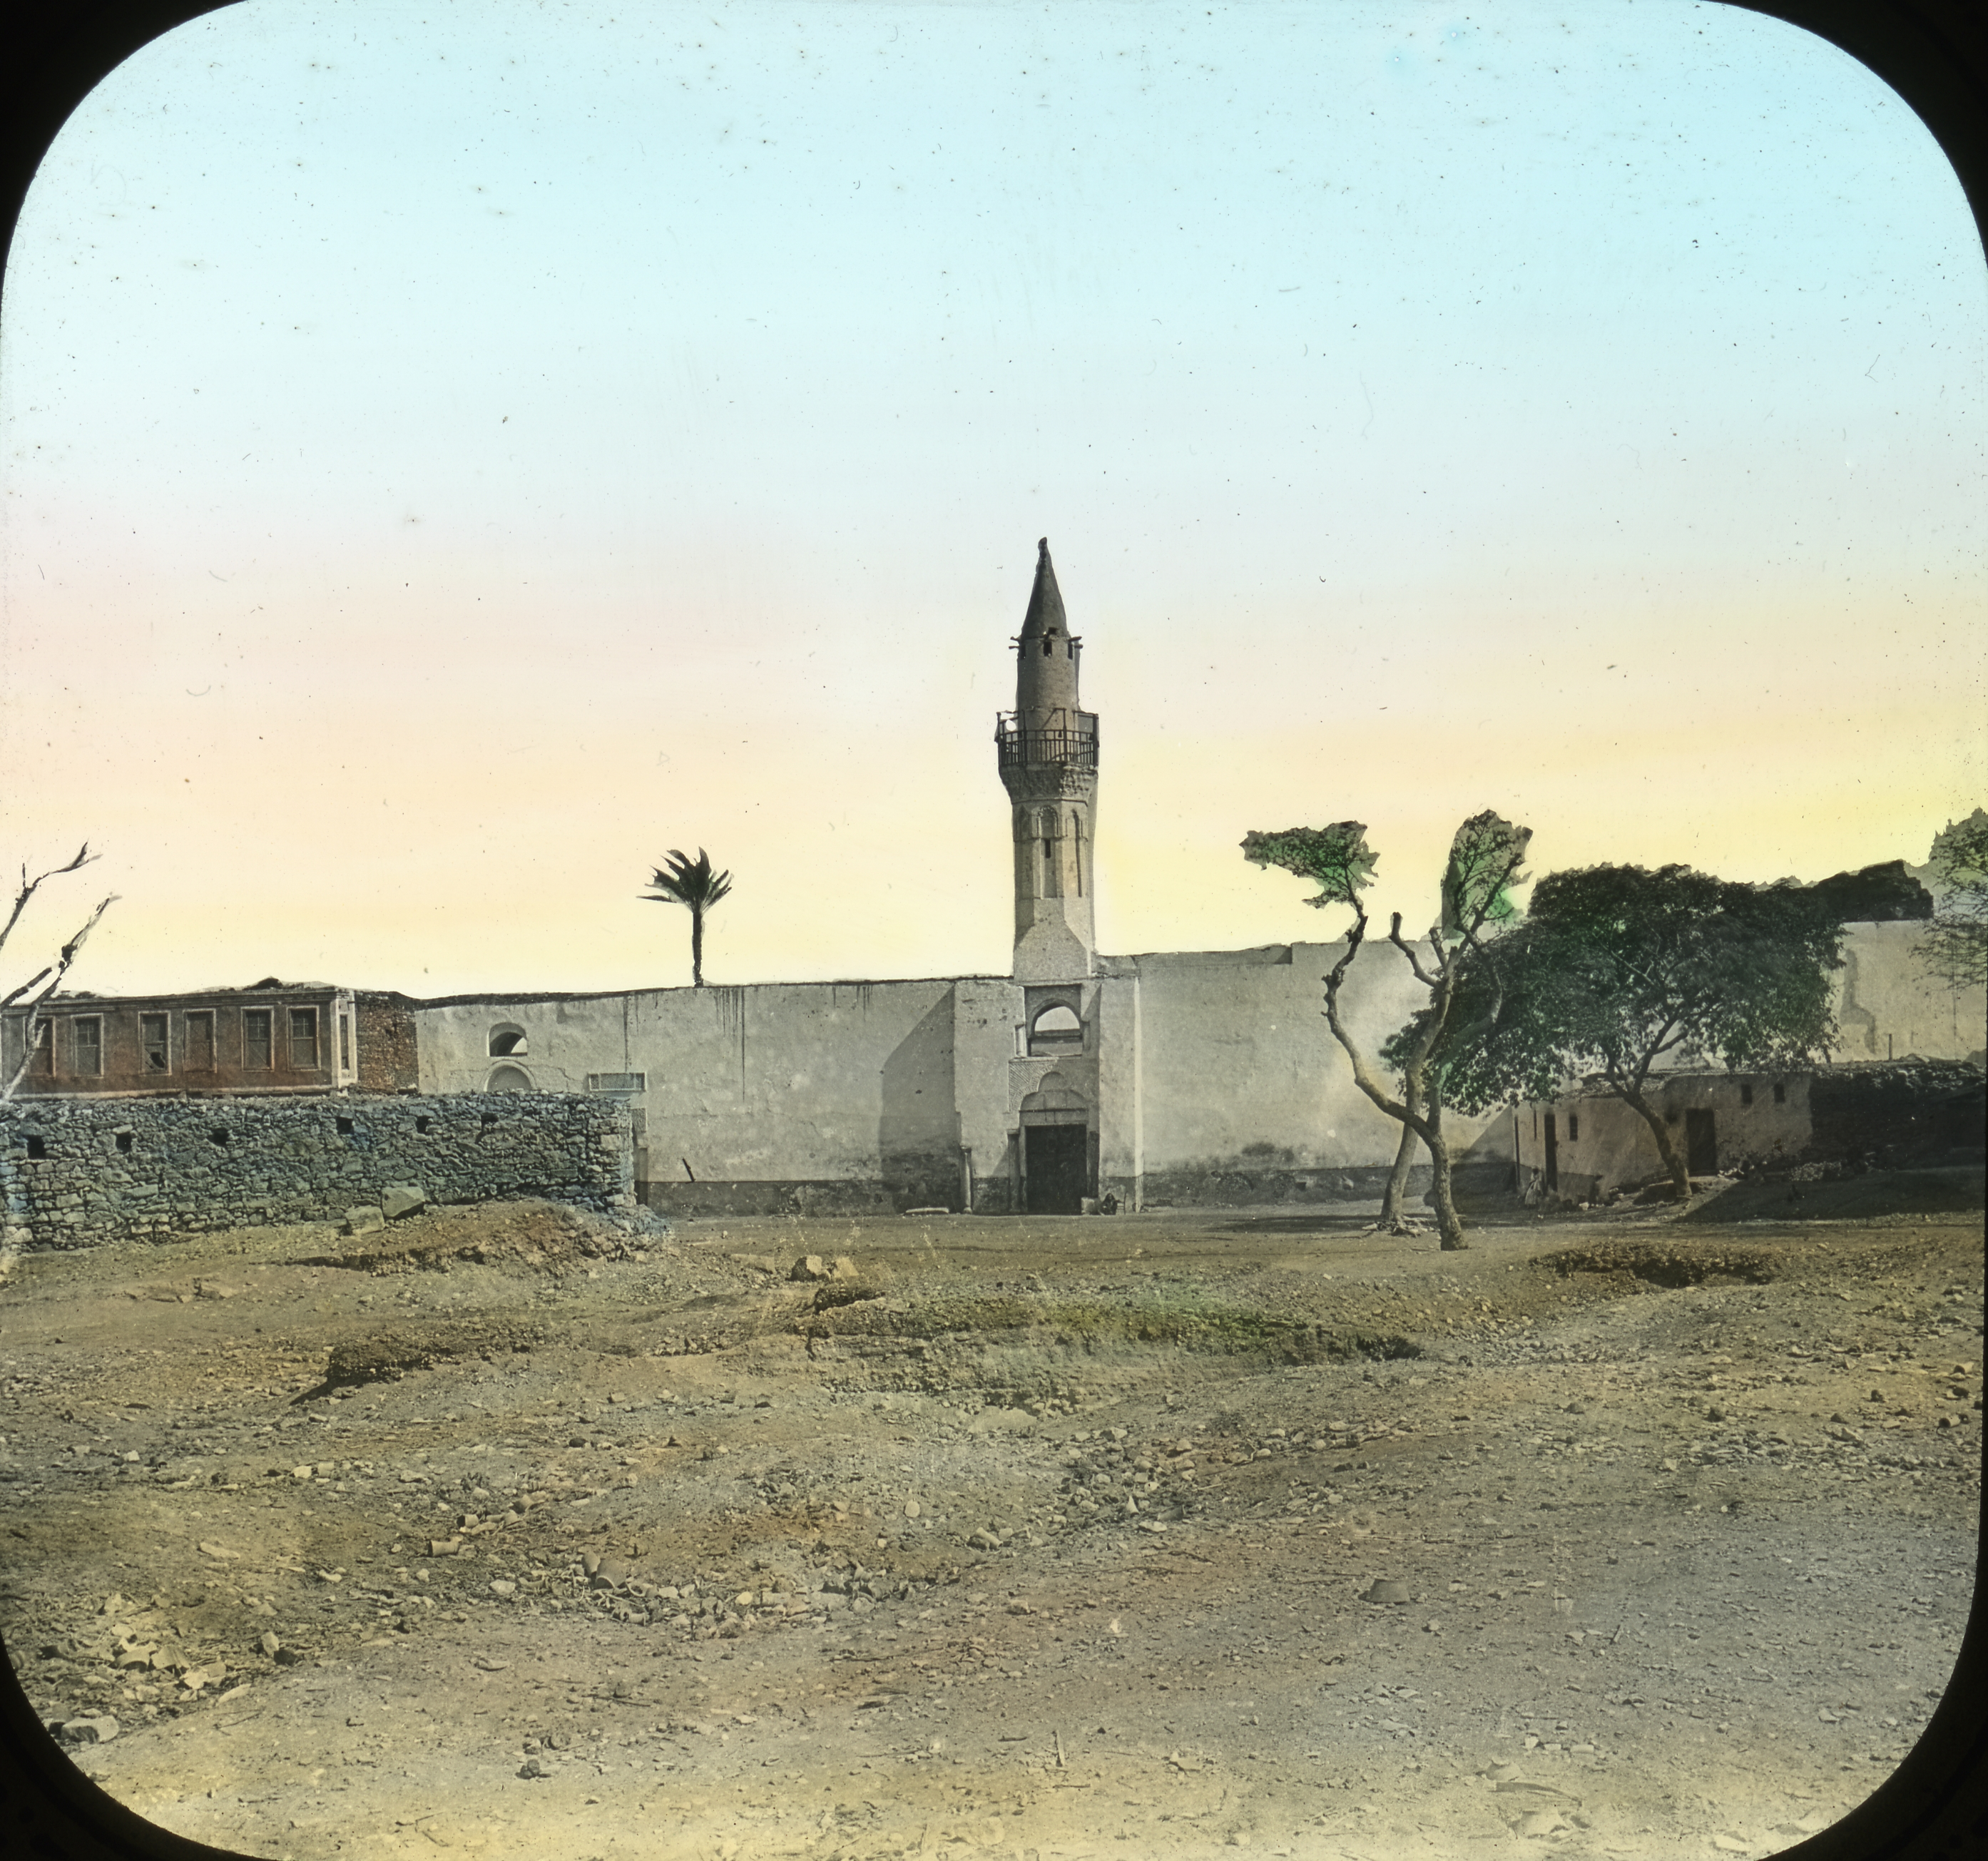 021 - Egypt - Mosque of Amr, Old Cairo